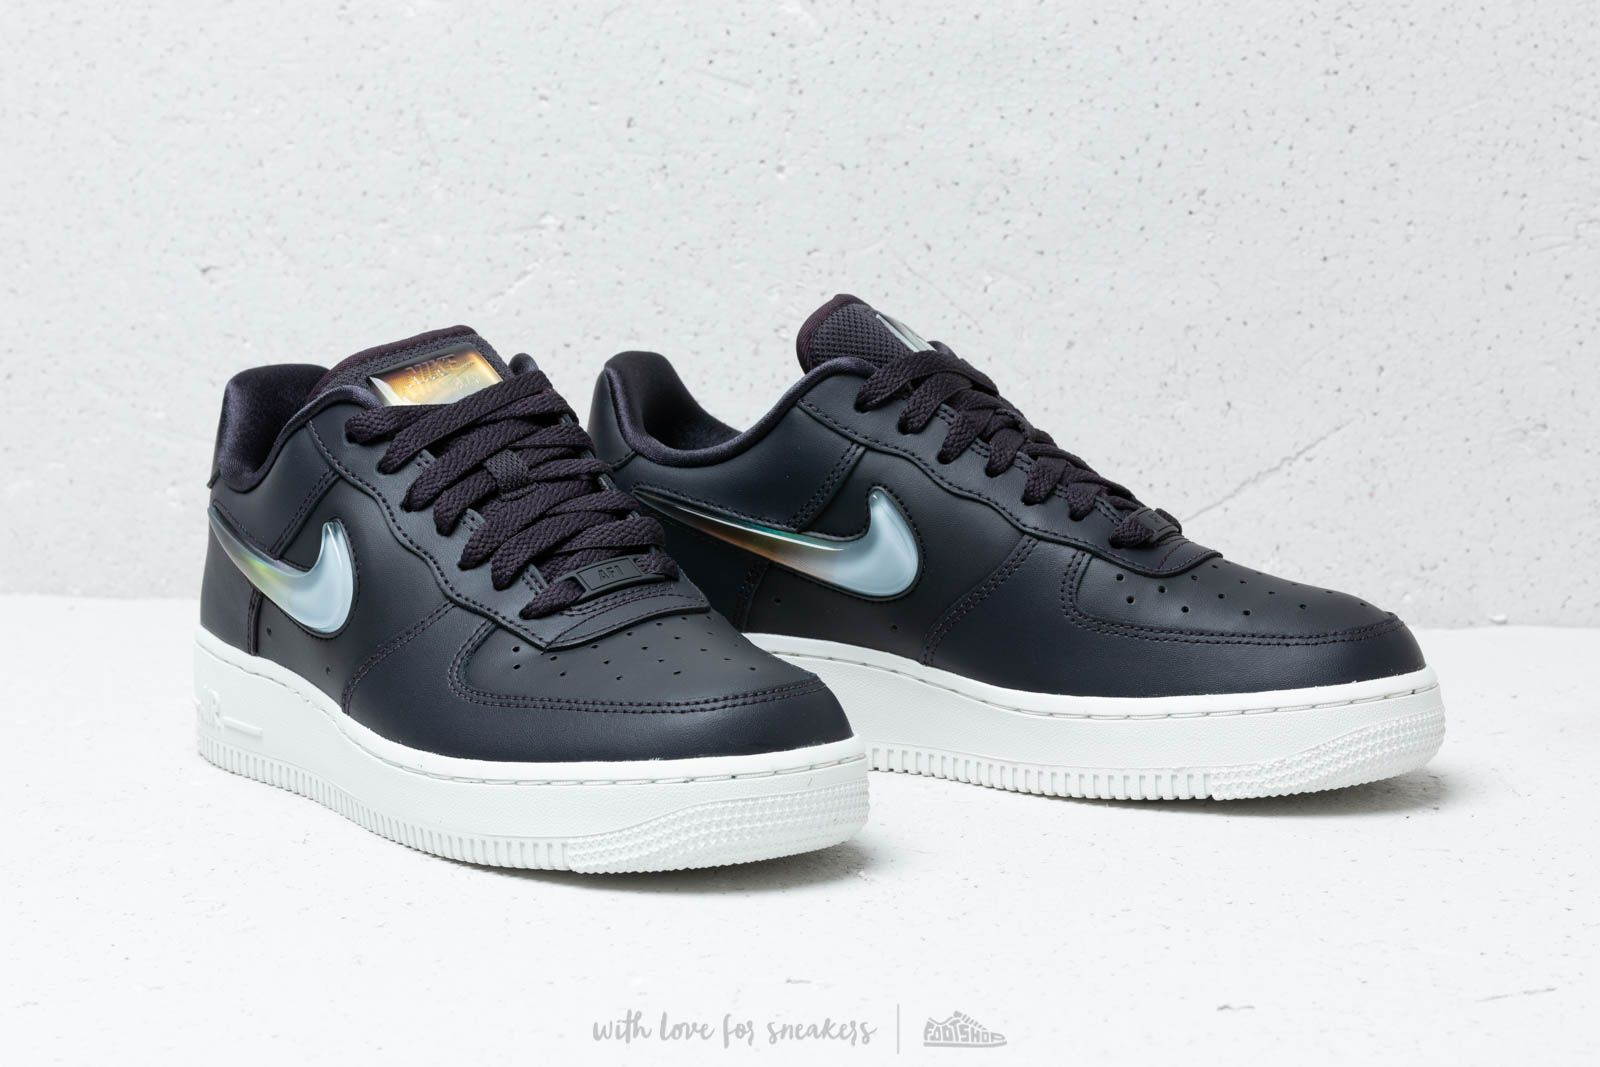 Nike W Air Force 1 '07 Se Prm Oil Grey Bright Crimson Obsidian Mist | Footshop